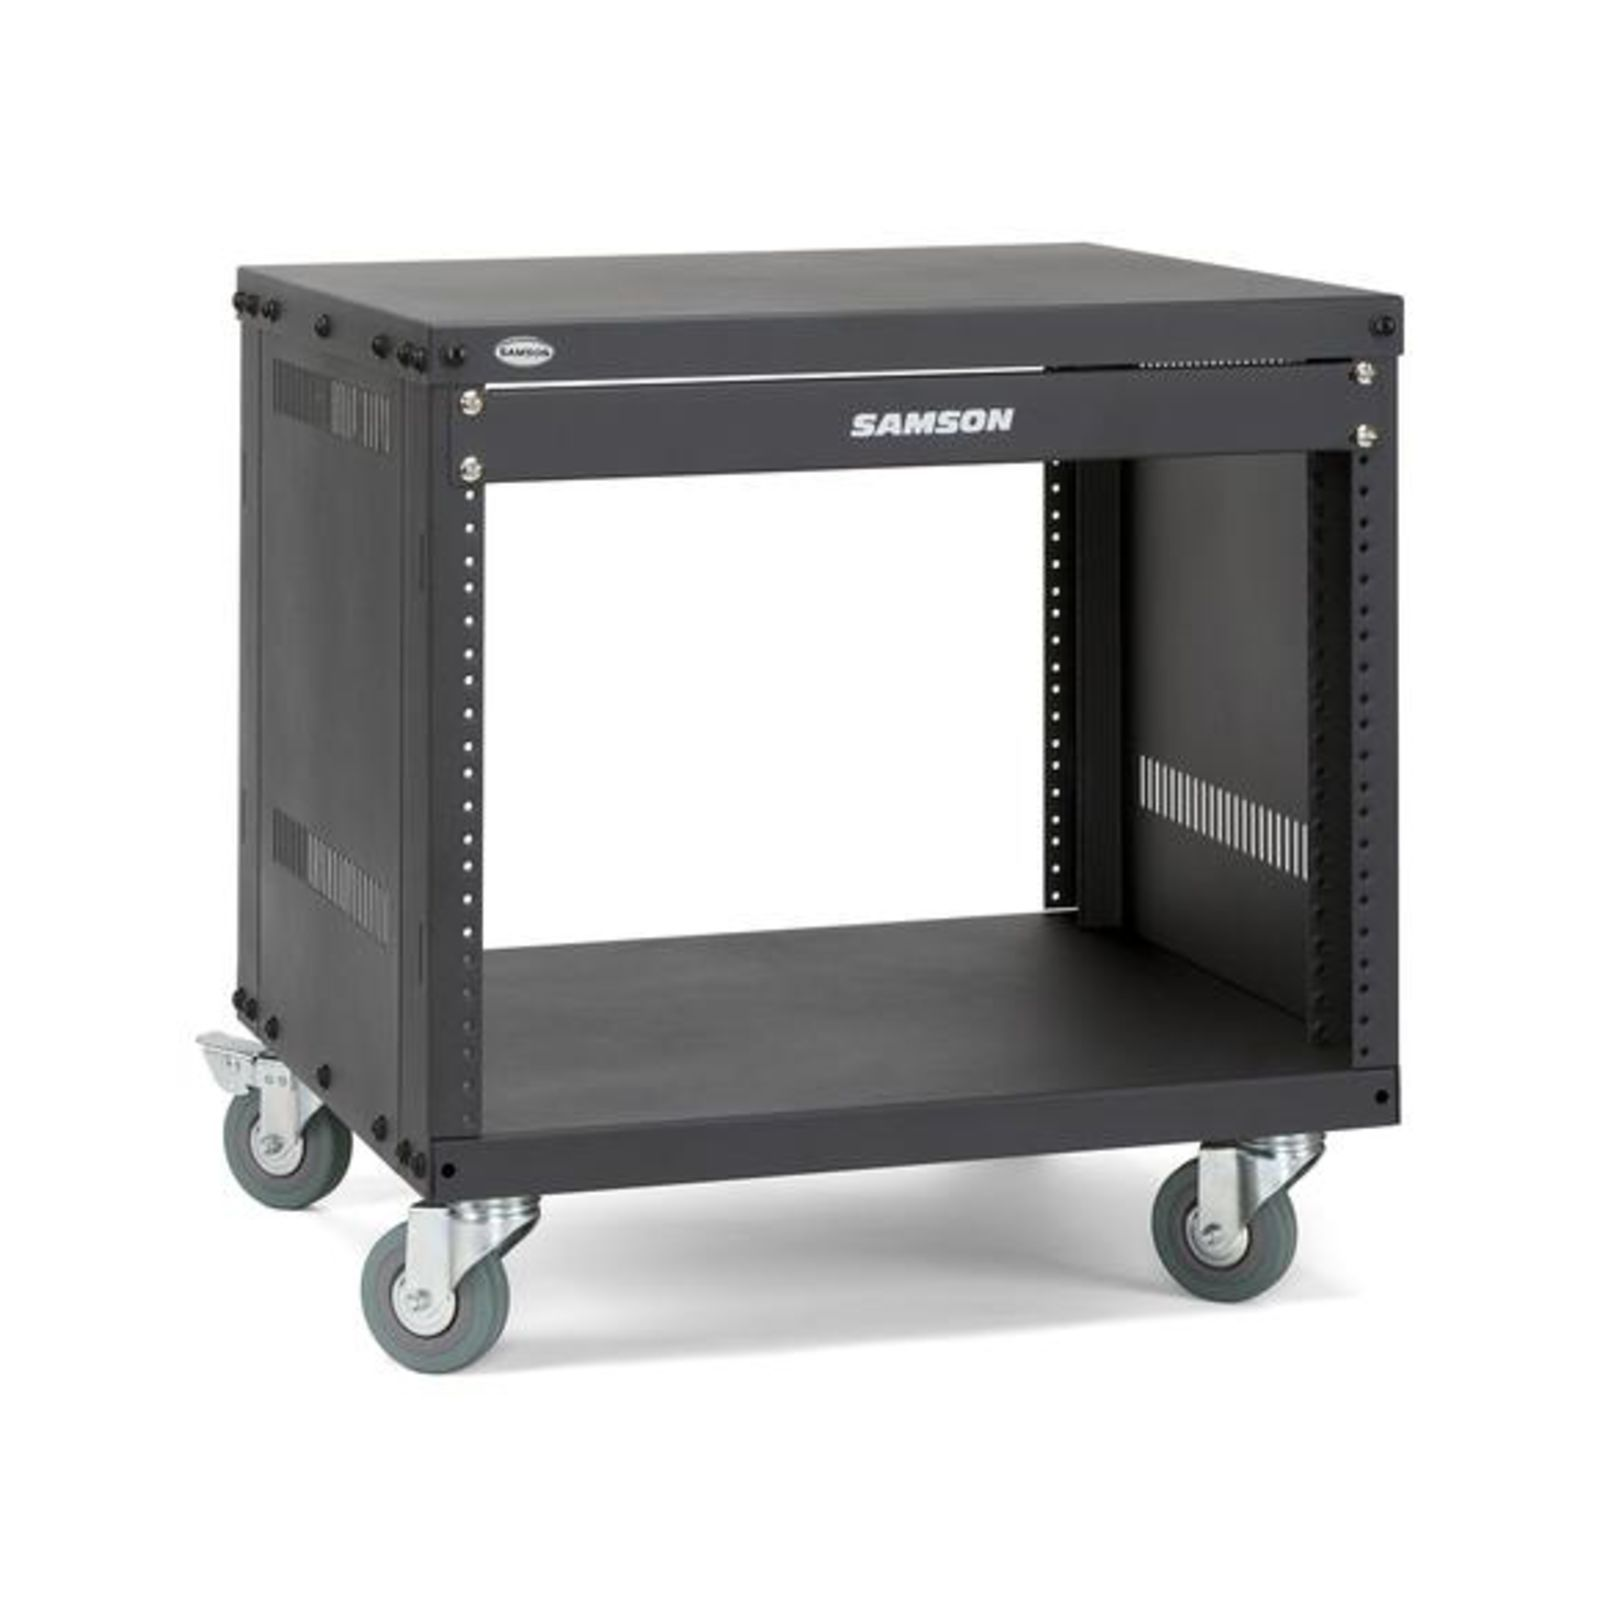 Samson SRK 8 8HE Equipment Rack Produktbillede